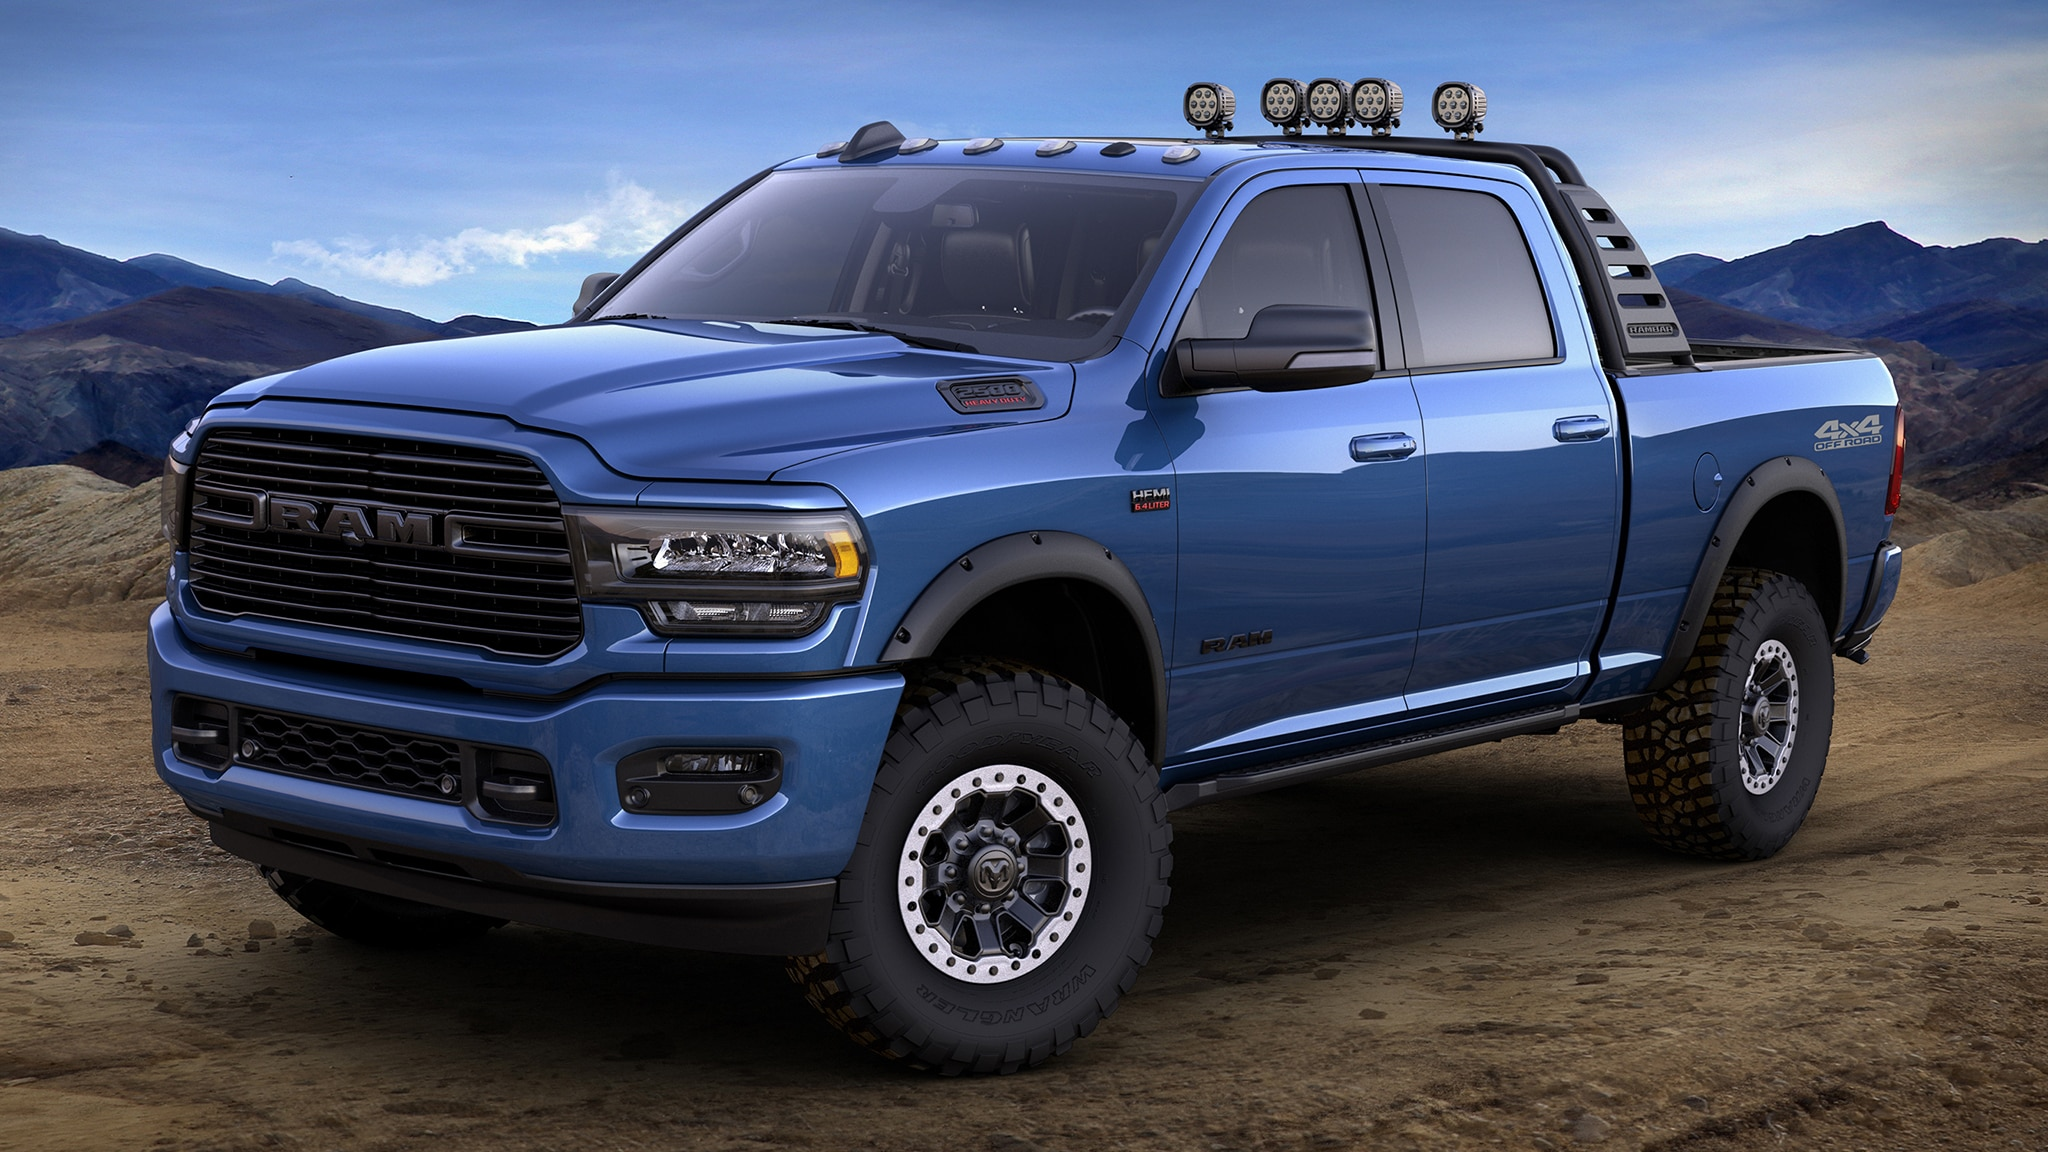 Mopar Has 170 Ways to Customize the New Ram HD ...